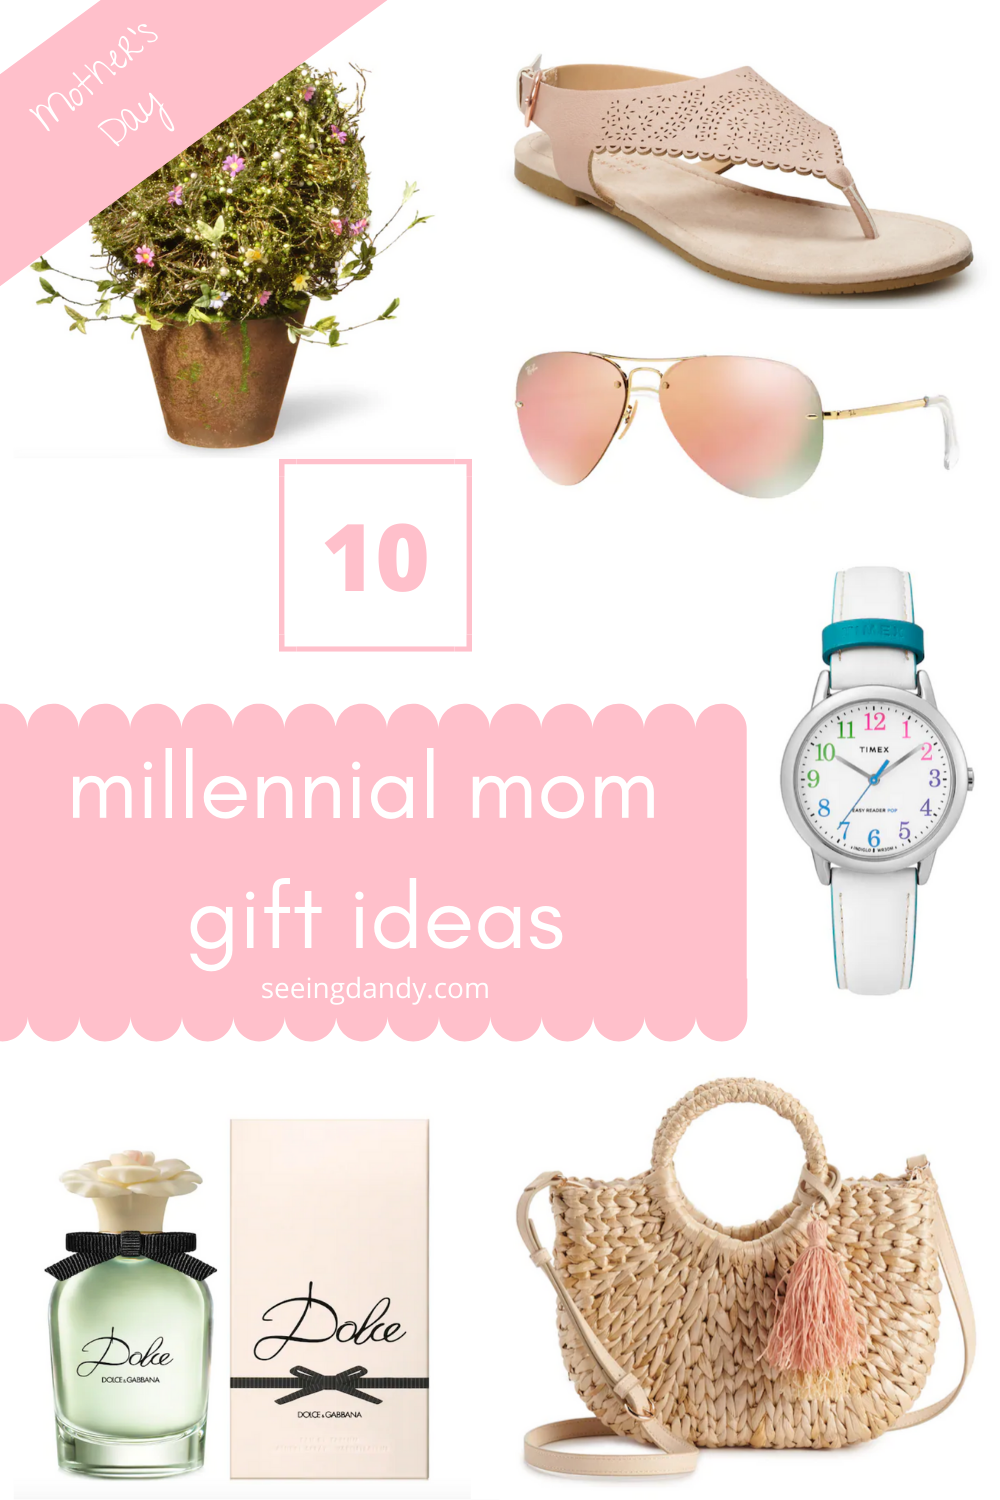 10 best millennial mom gift ideas for Mothers Day